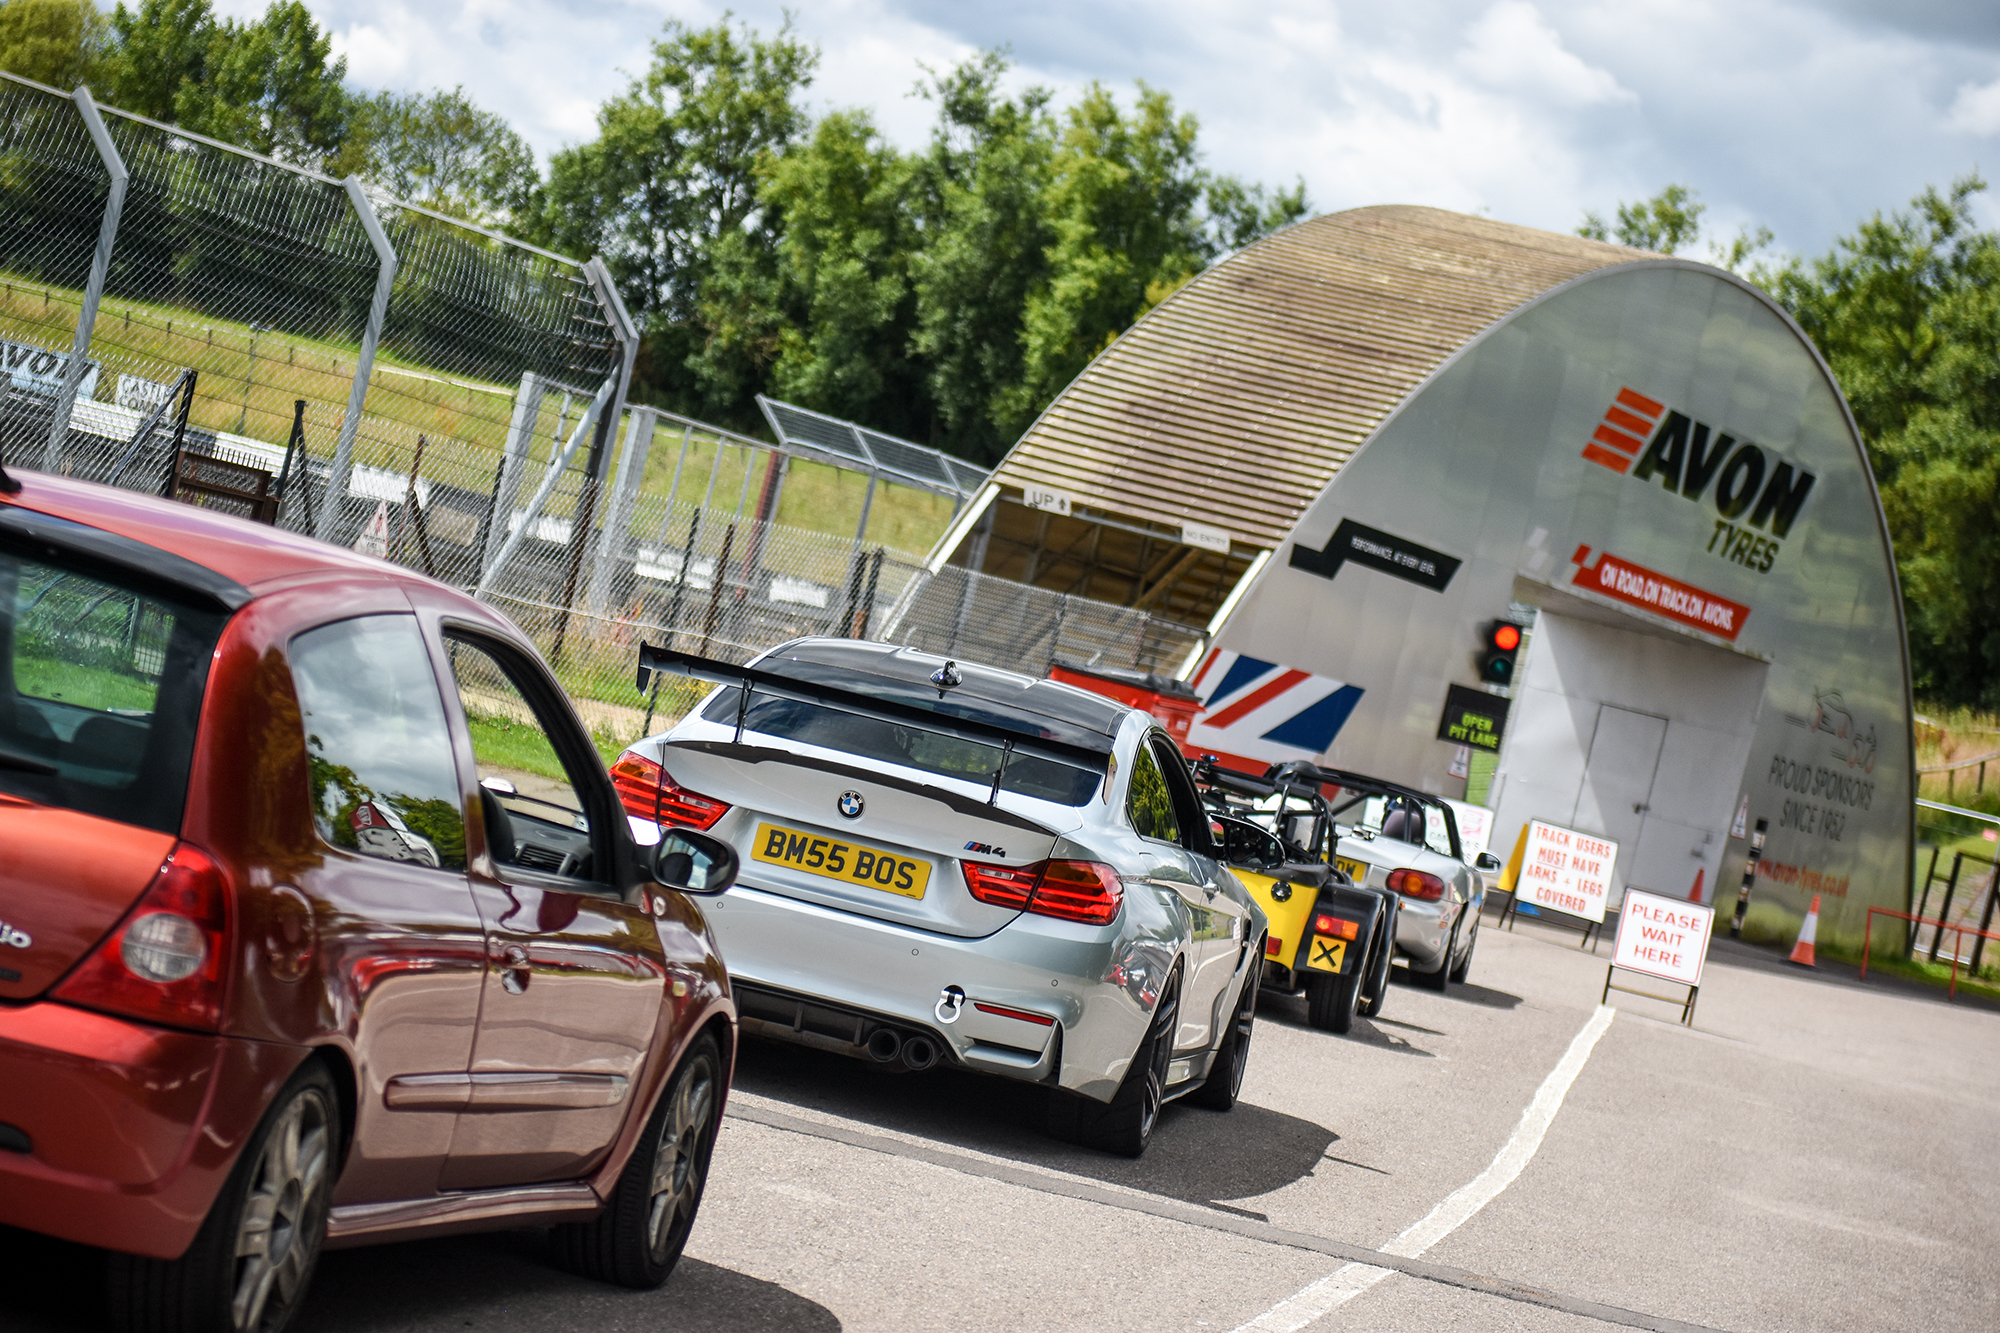 CASTLE COMBE CIRCUIT LAUNCHES AFFORDABLE WINTER CAR TRACK DAYS